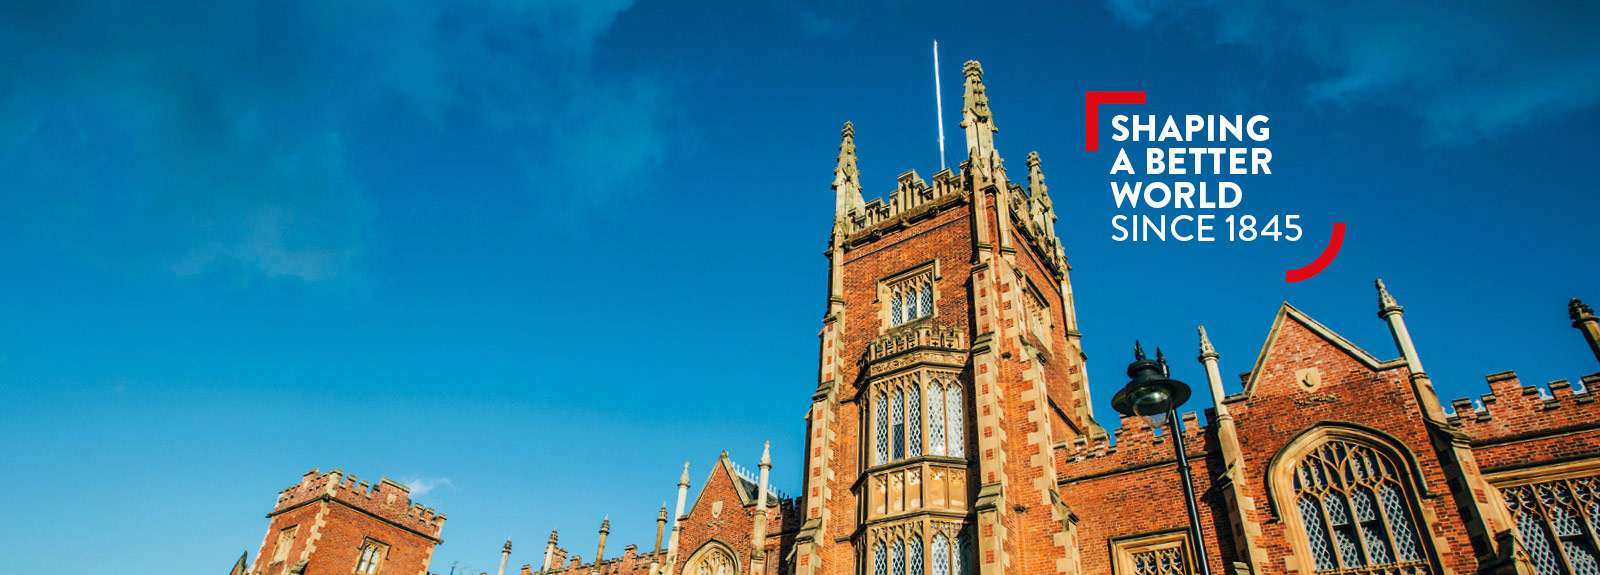 Queen's University Belfast - Shaping a better world since 1845 - Lanyon Building promotional image